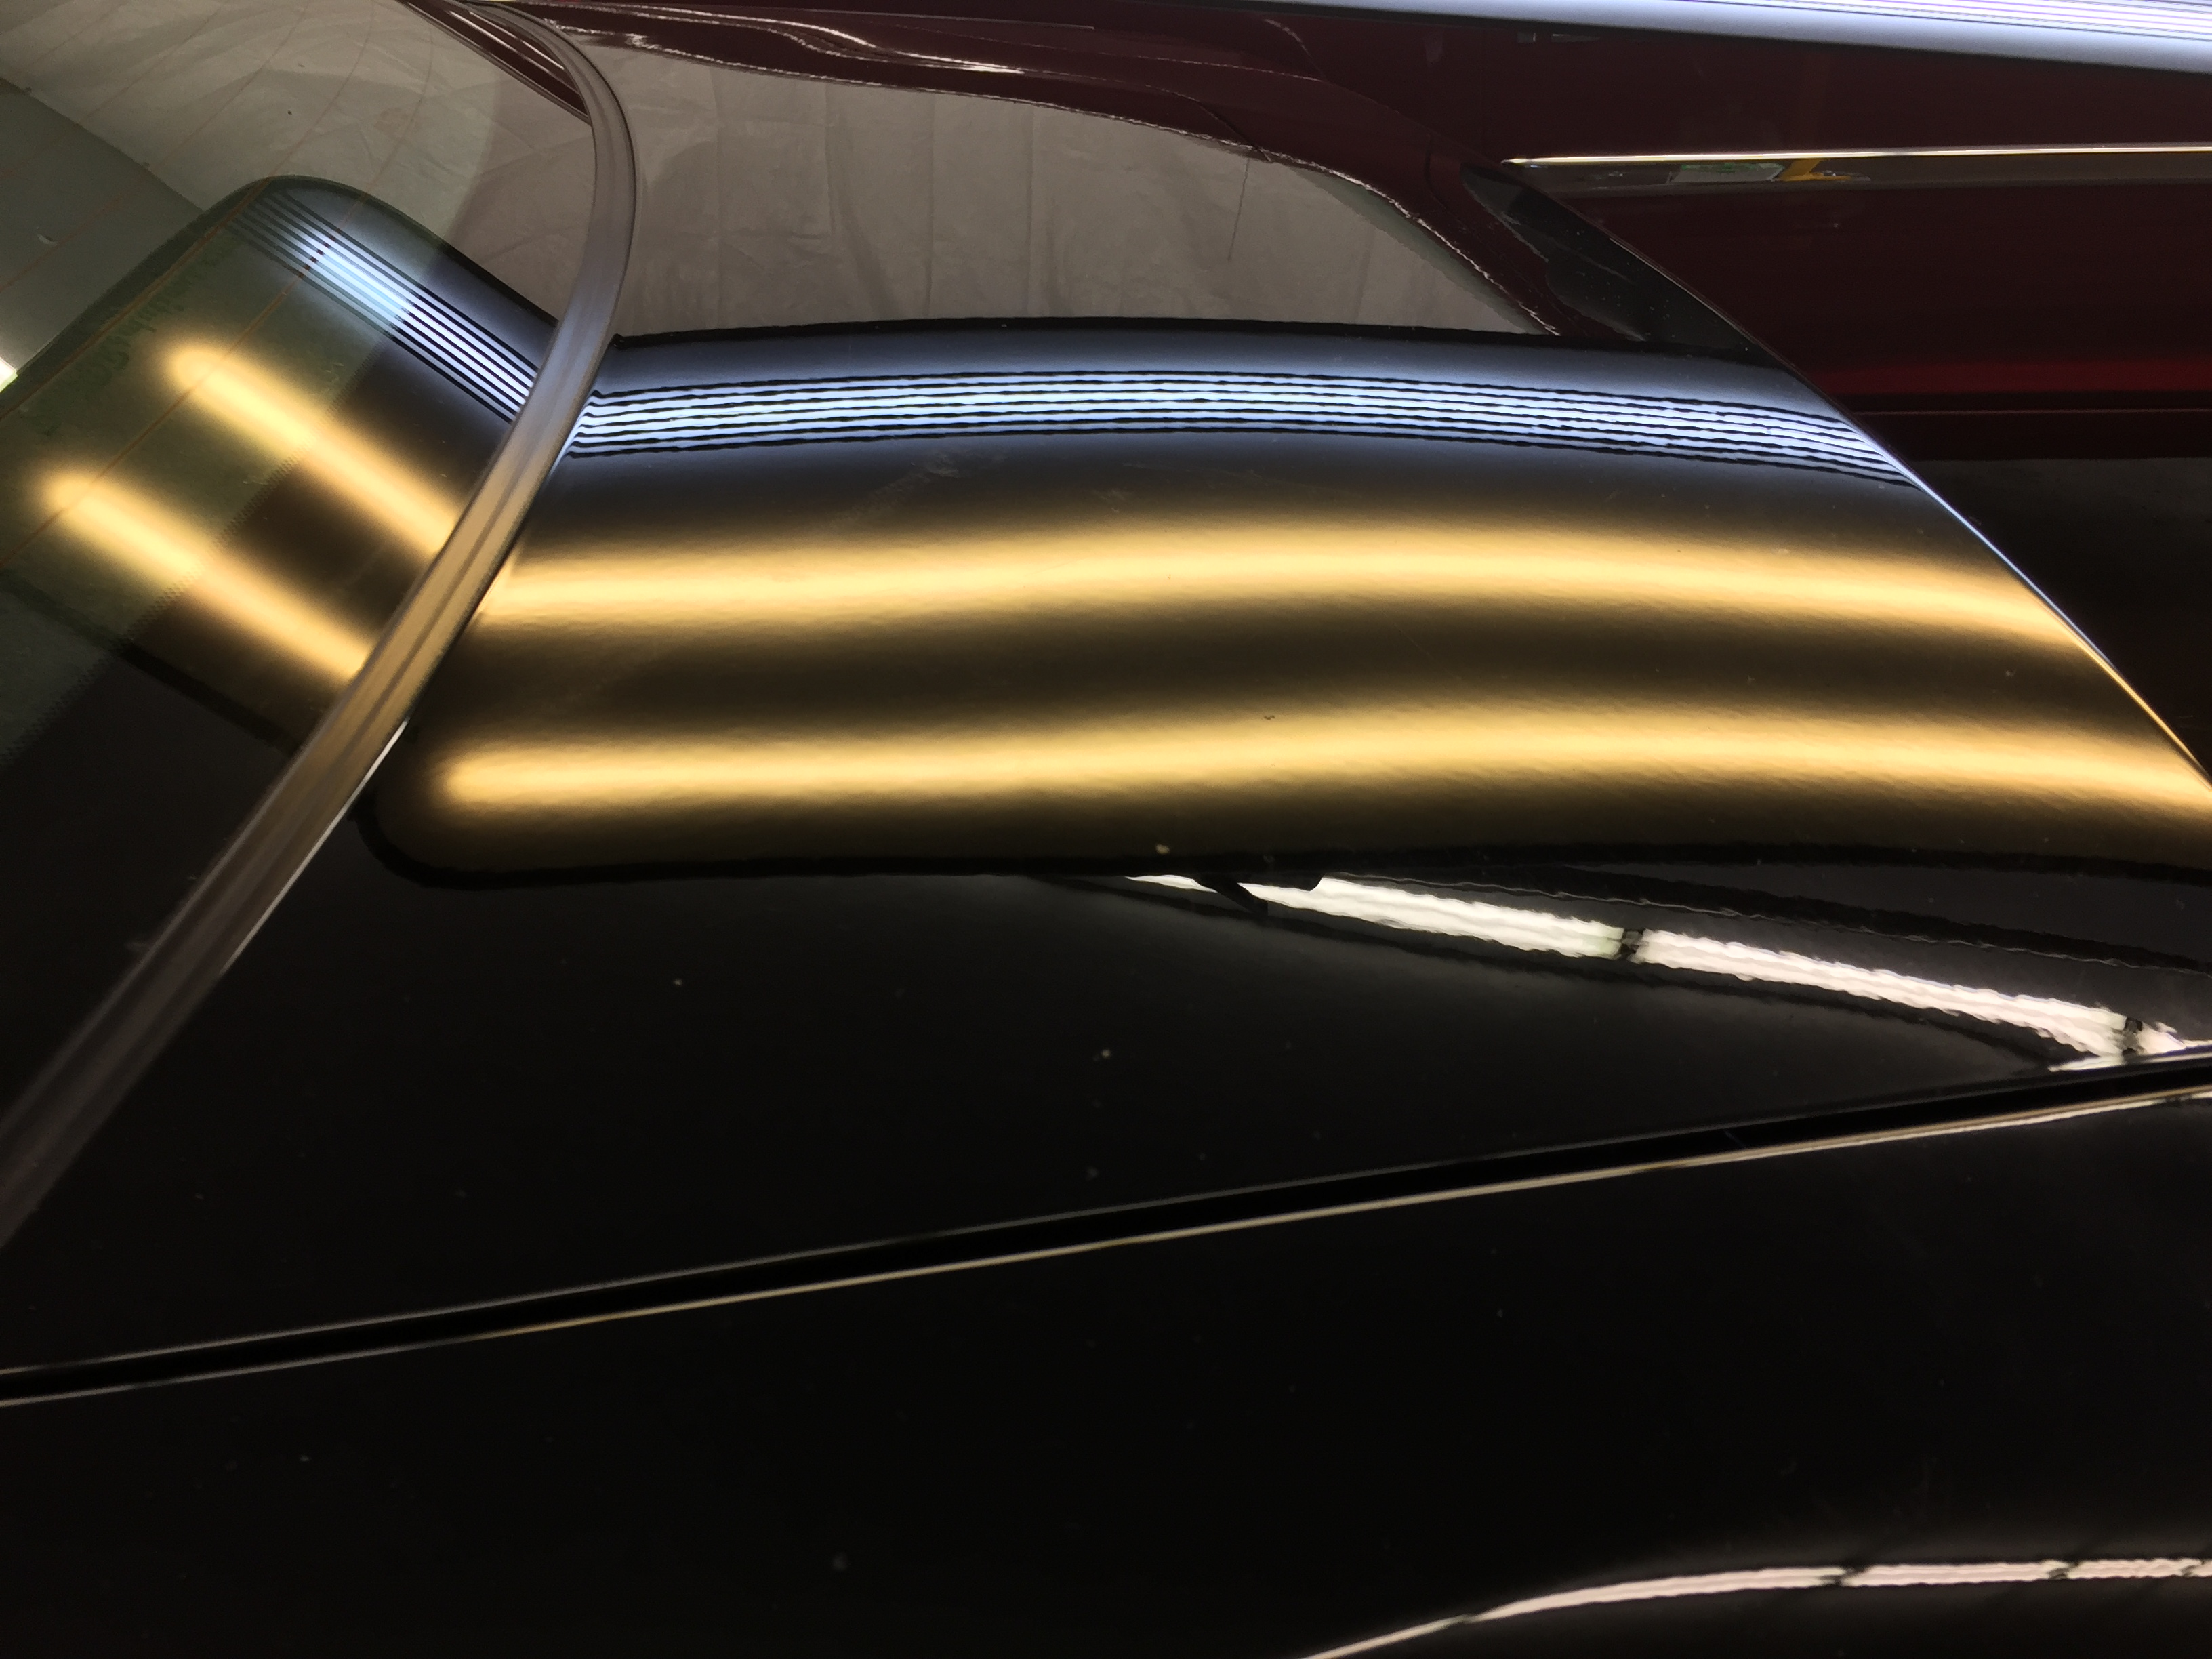 2015 Chevy Impala Hail damage removal on the trunk. Paintless Dent Repair, Paintless Dent Removal, Ding Removal, Springfield, IL, Michael Bocek. http://217dent.com